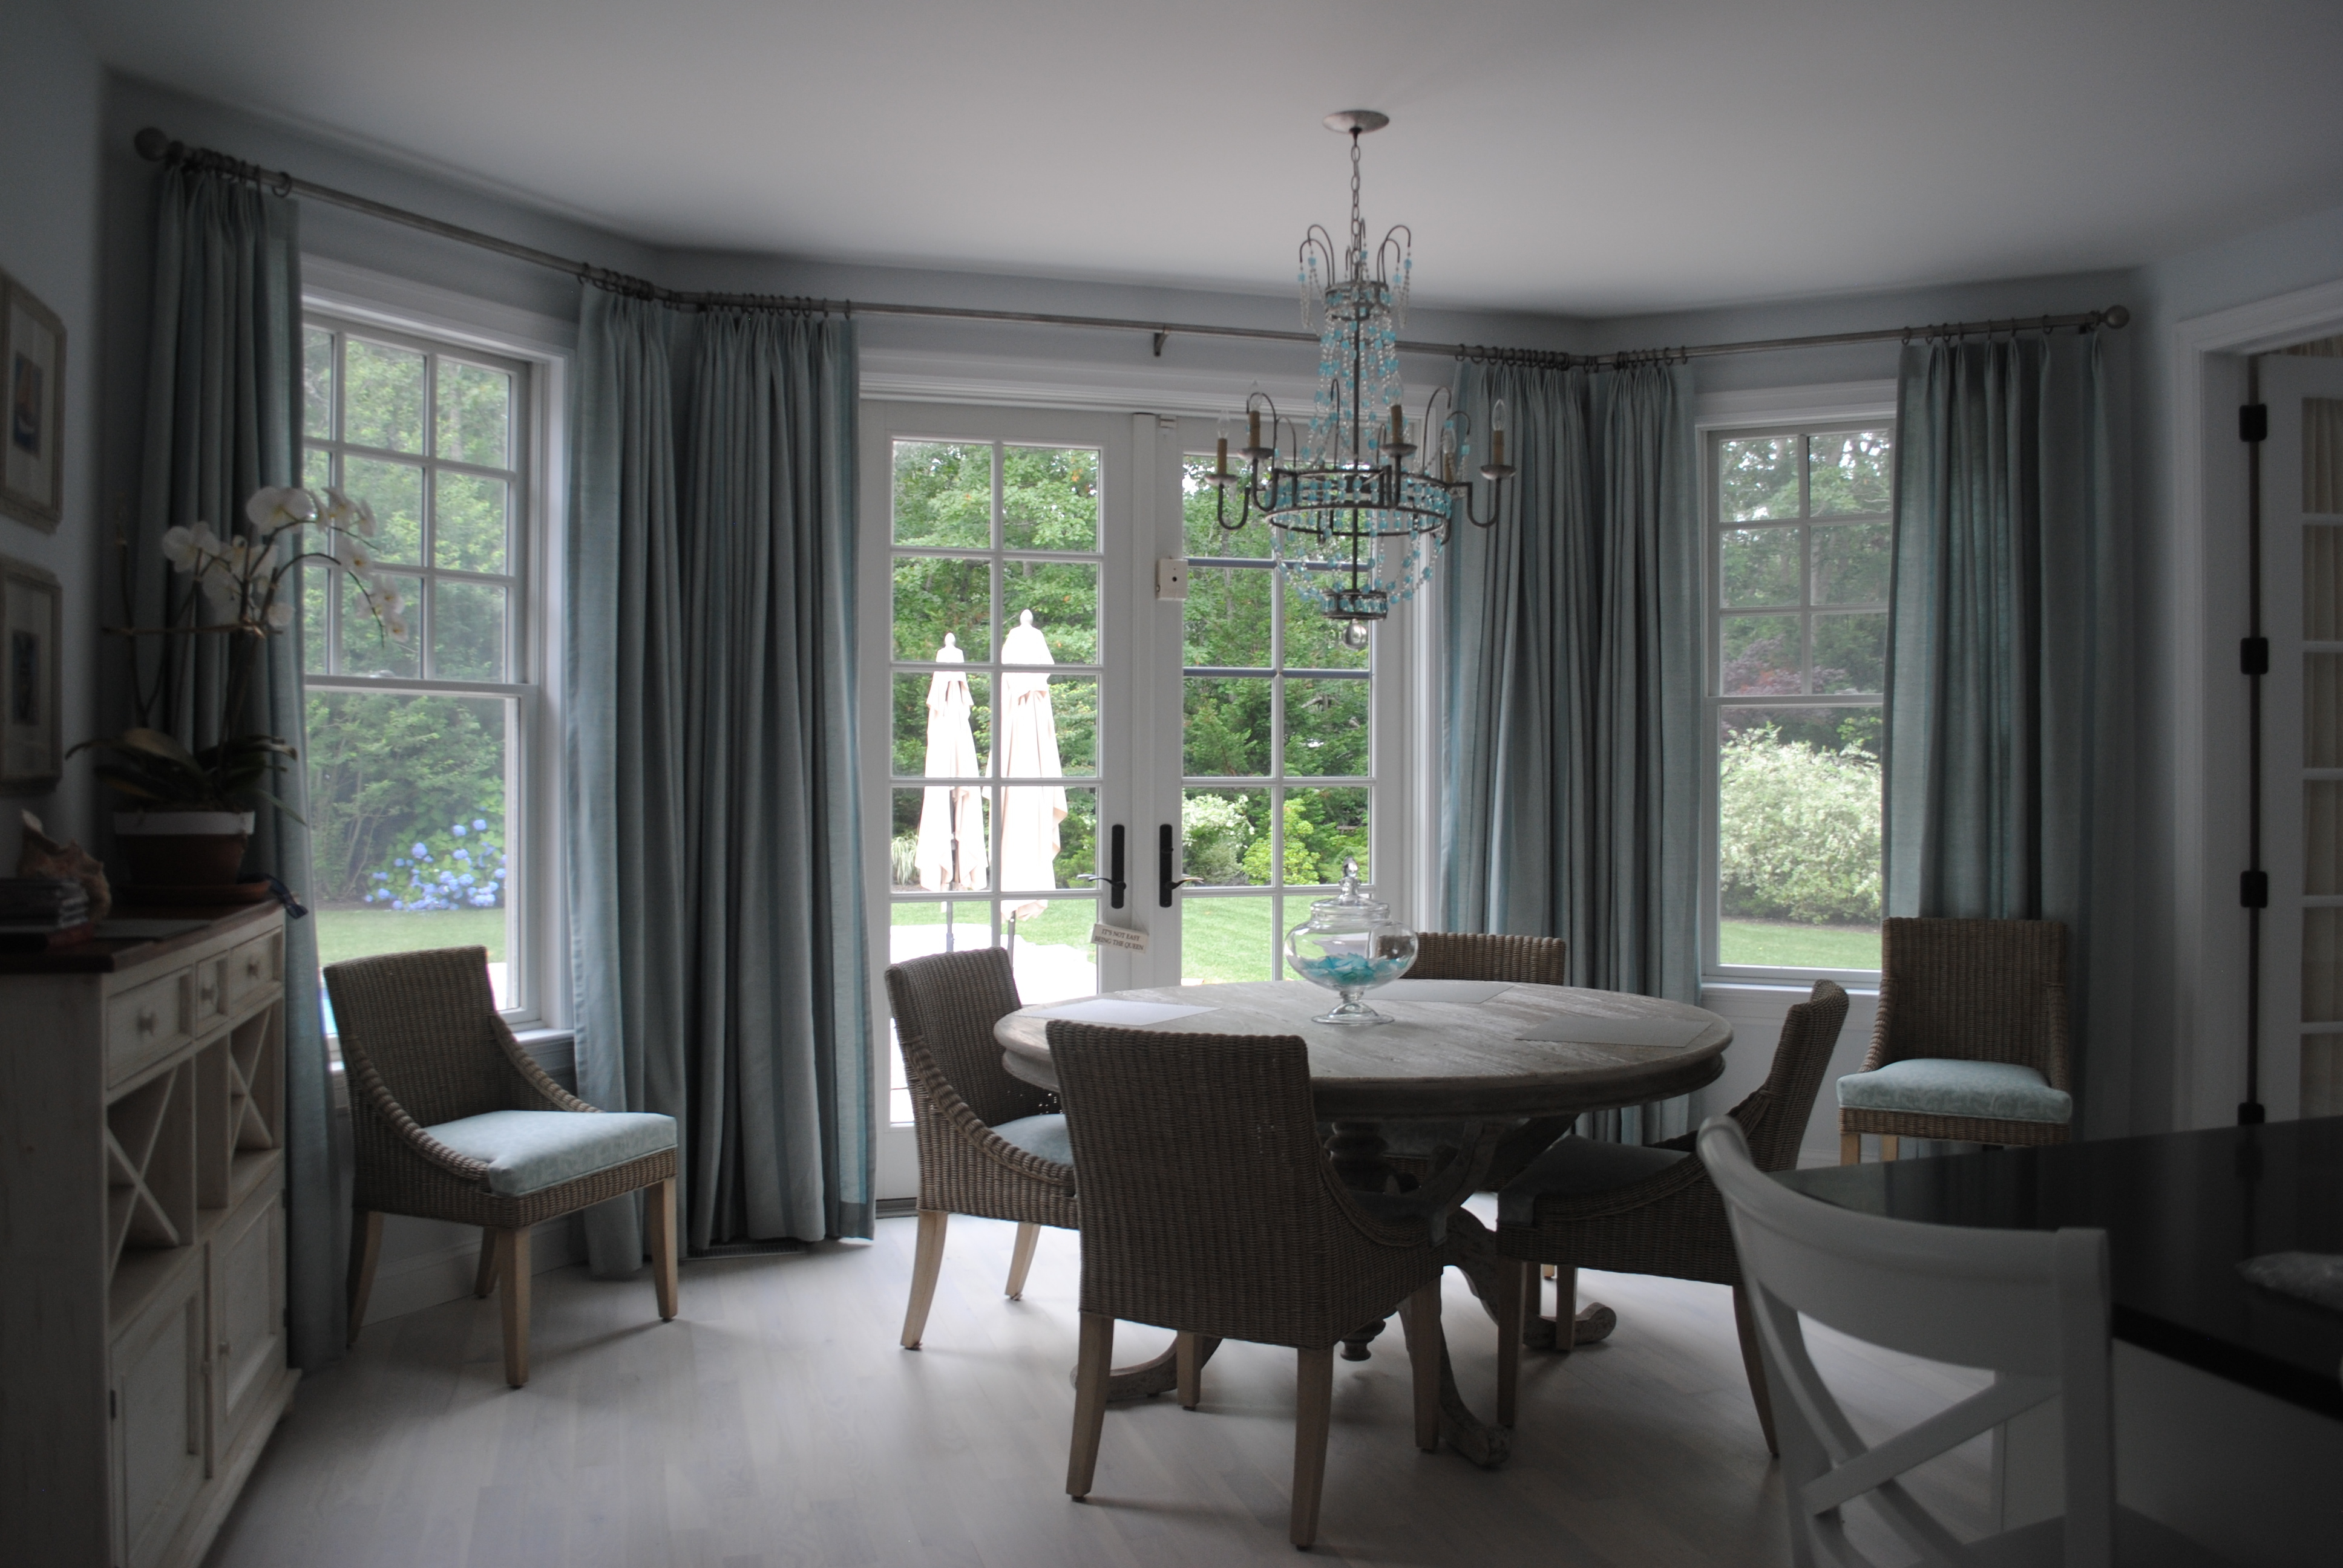 Hampton window style in sag harbor ny 11963 for Hamptons style window treatments